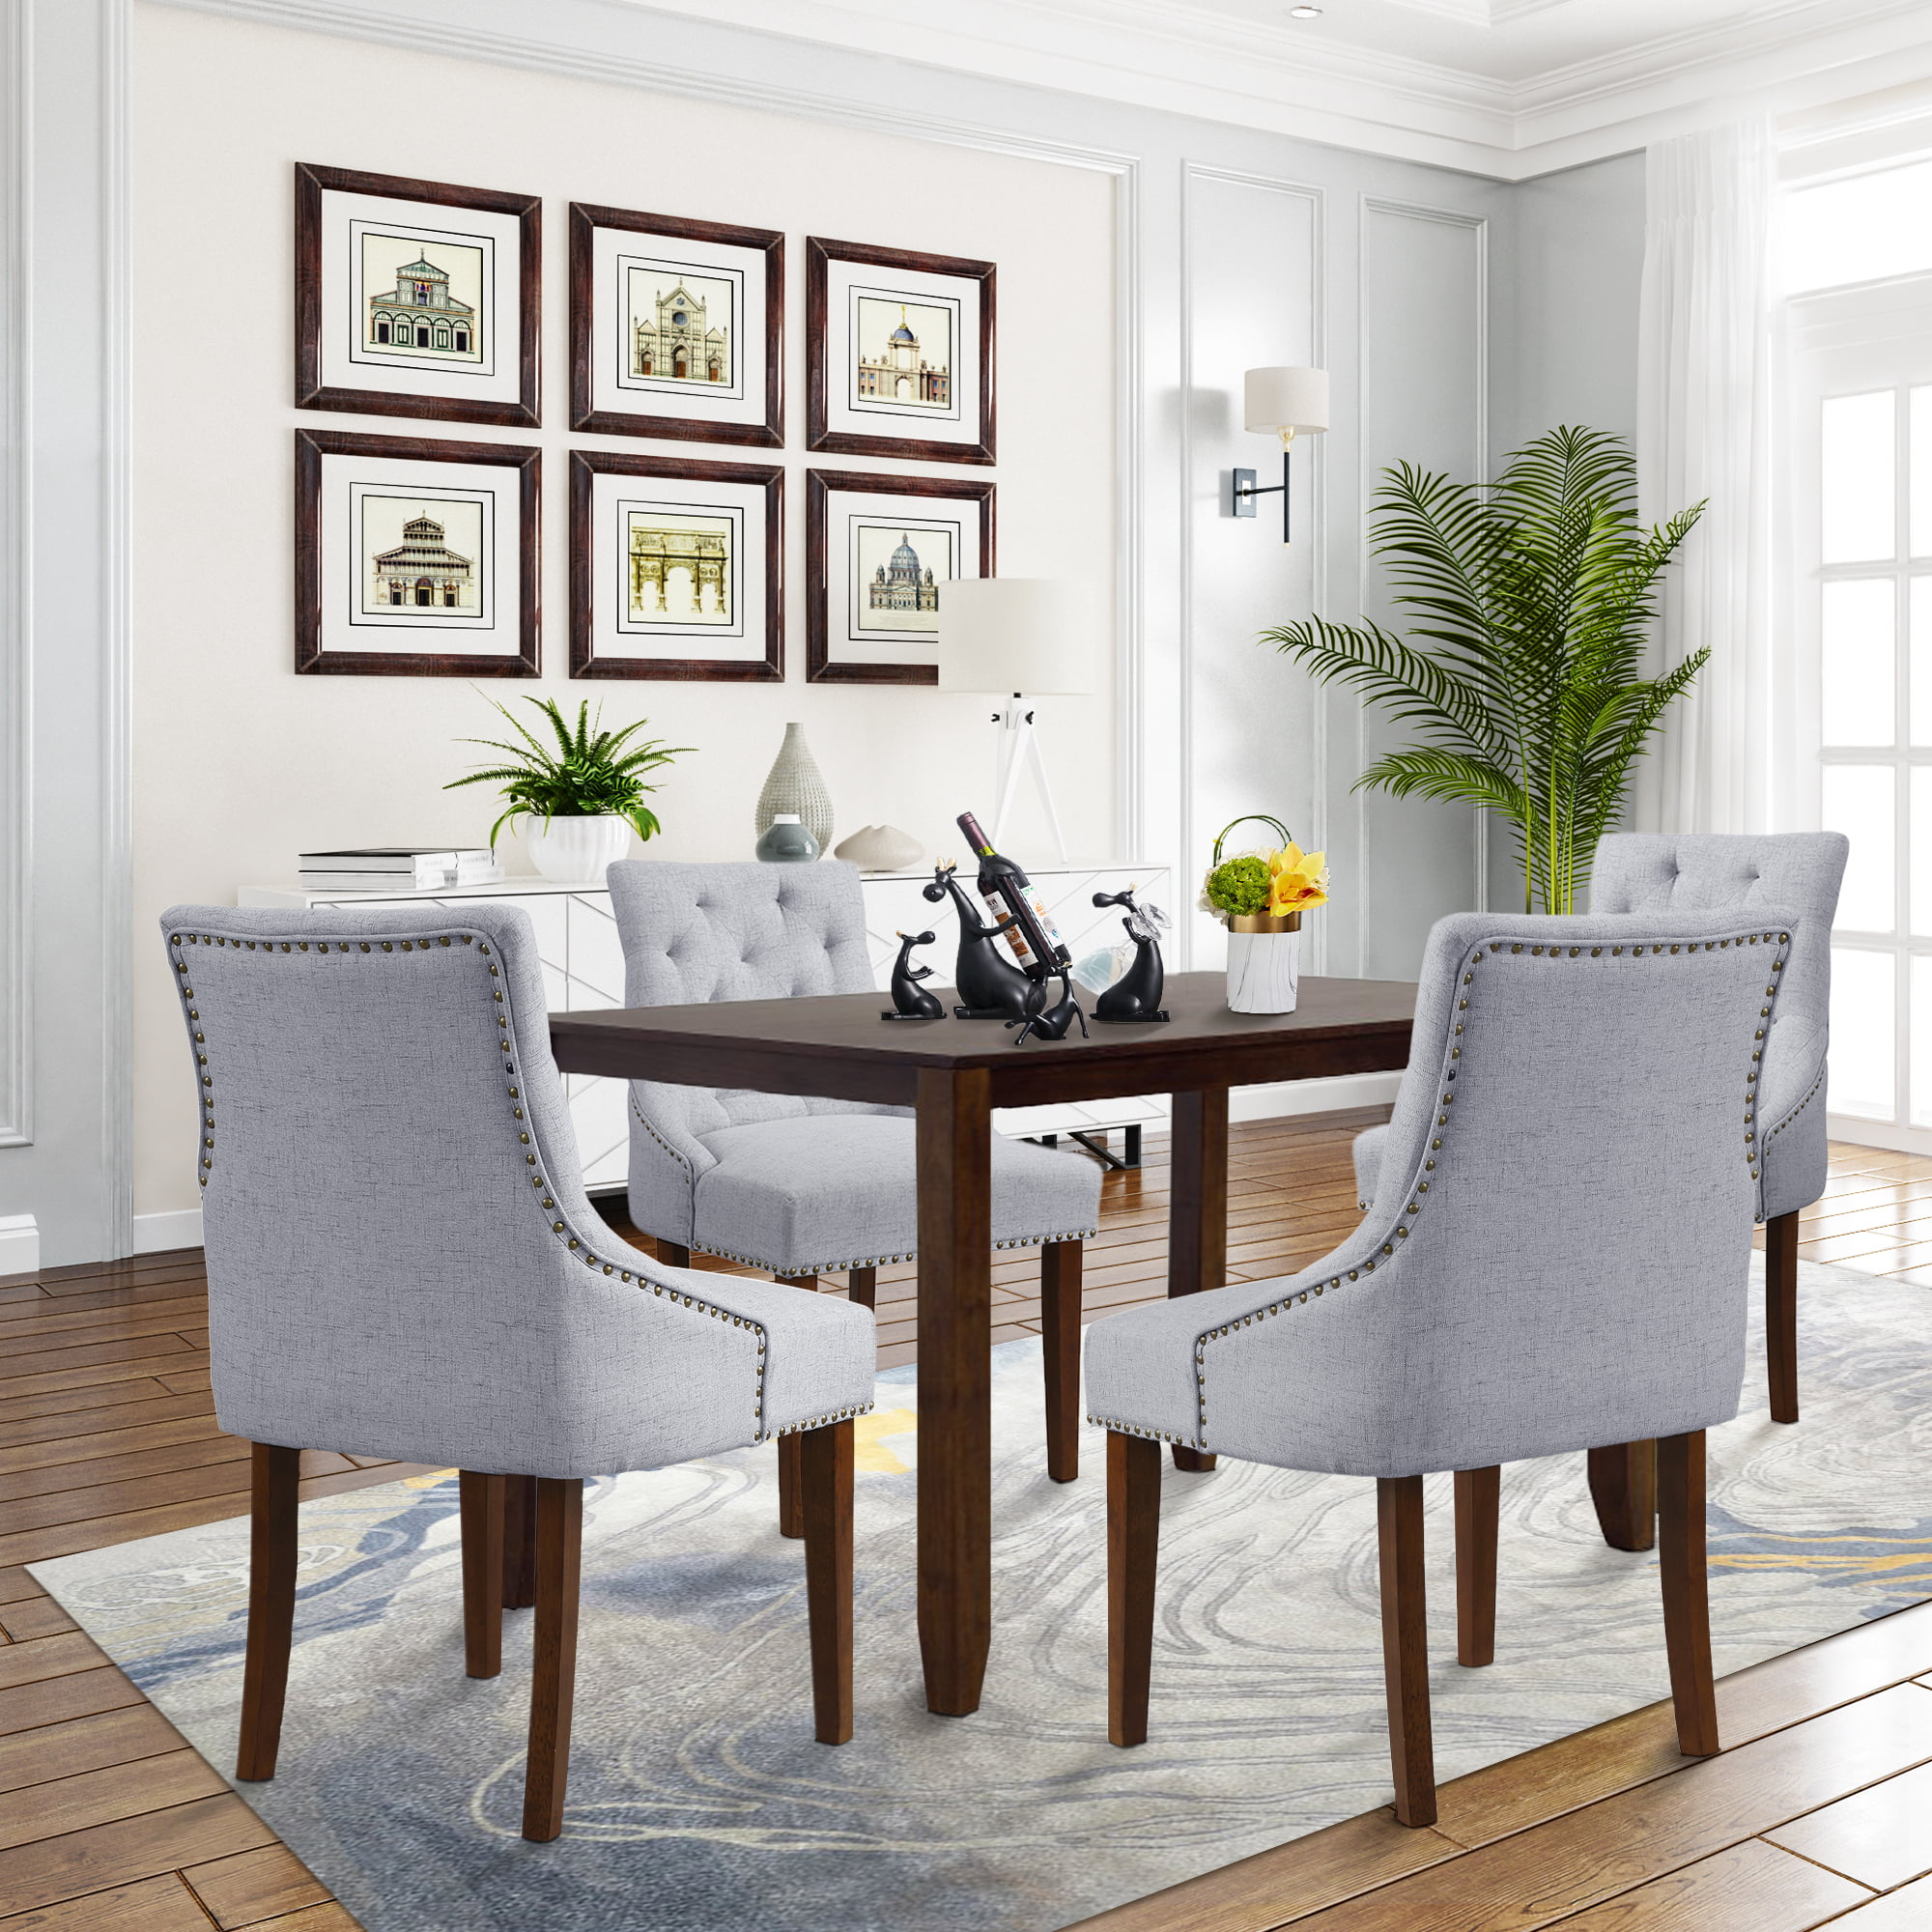 Tufted Upholstered Dining Chairs Set Of 6 Fabric Dining Chairs With Armrest Nailhead Trim And Solid Wood Leg Vintage Dining Room Chairs Classic Accent Chair For Living Room Meeting Gray W12138